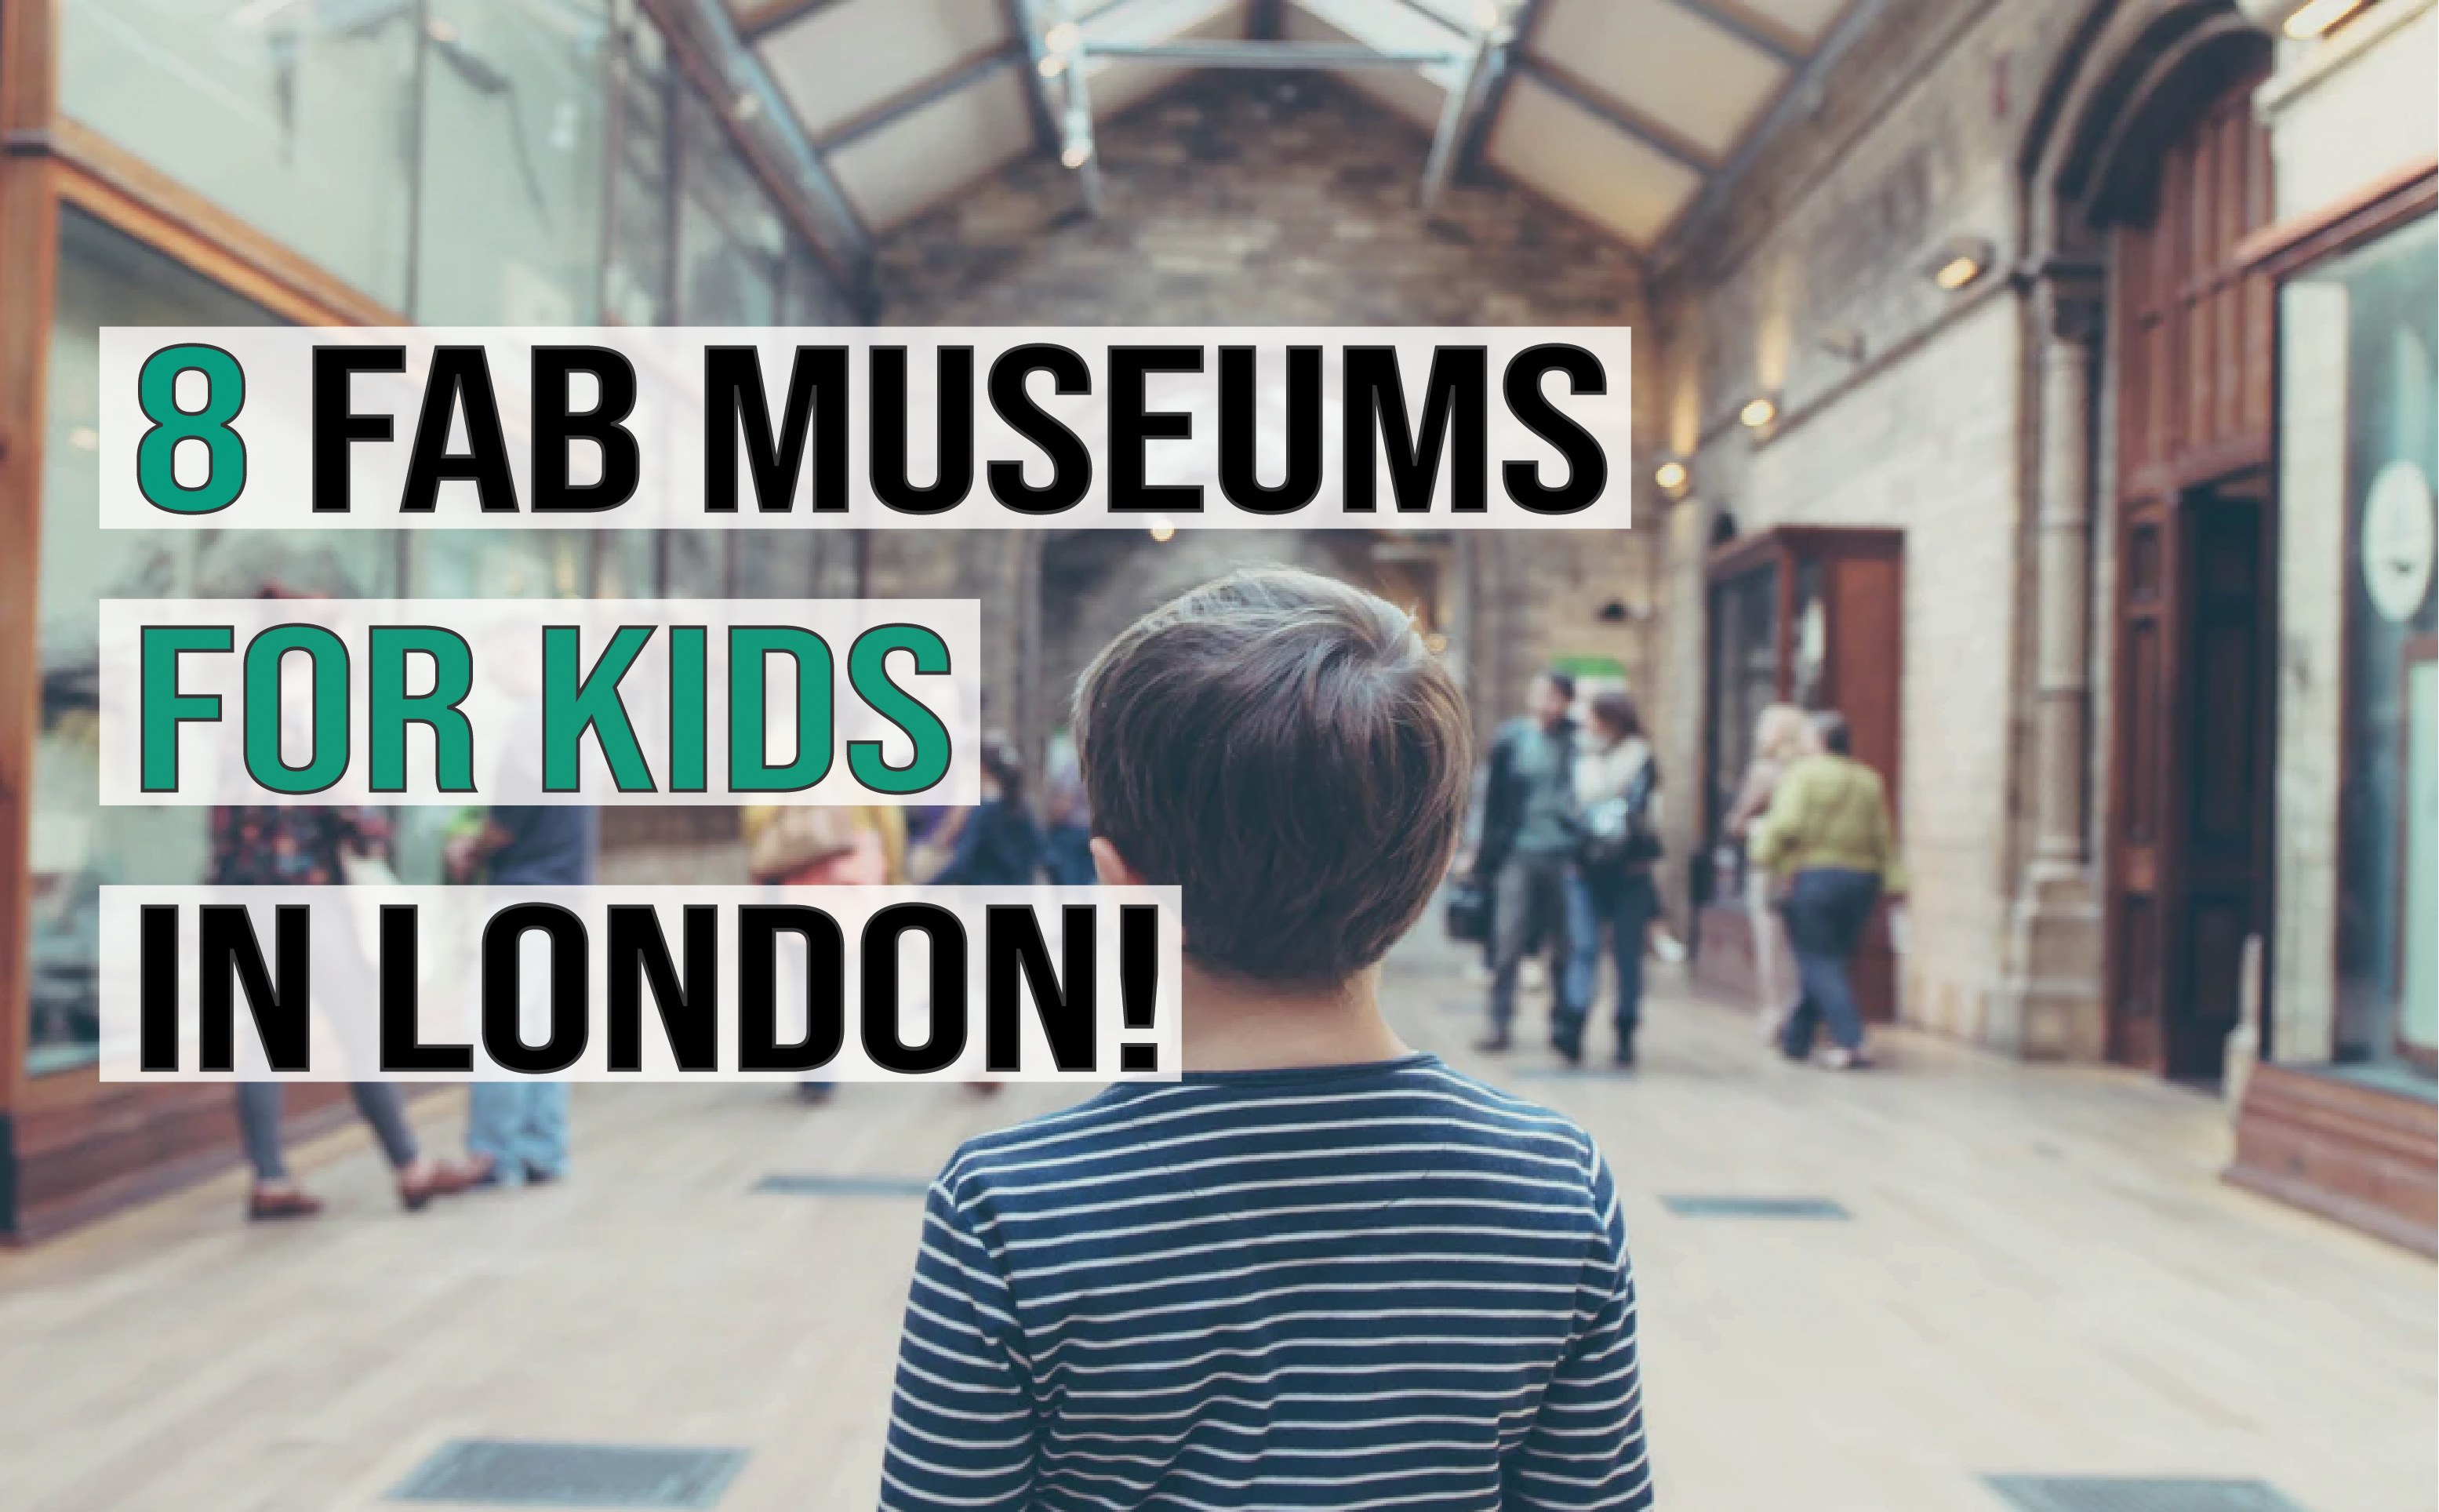 8 Fab Museums for Kids in London